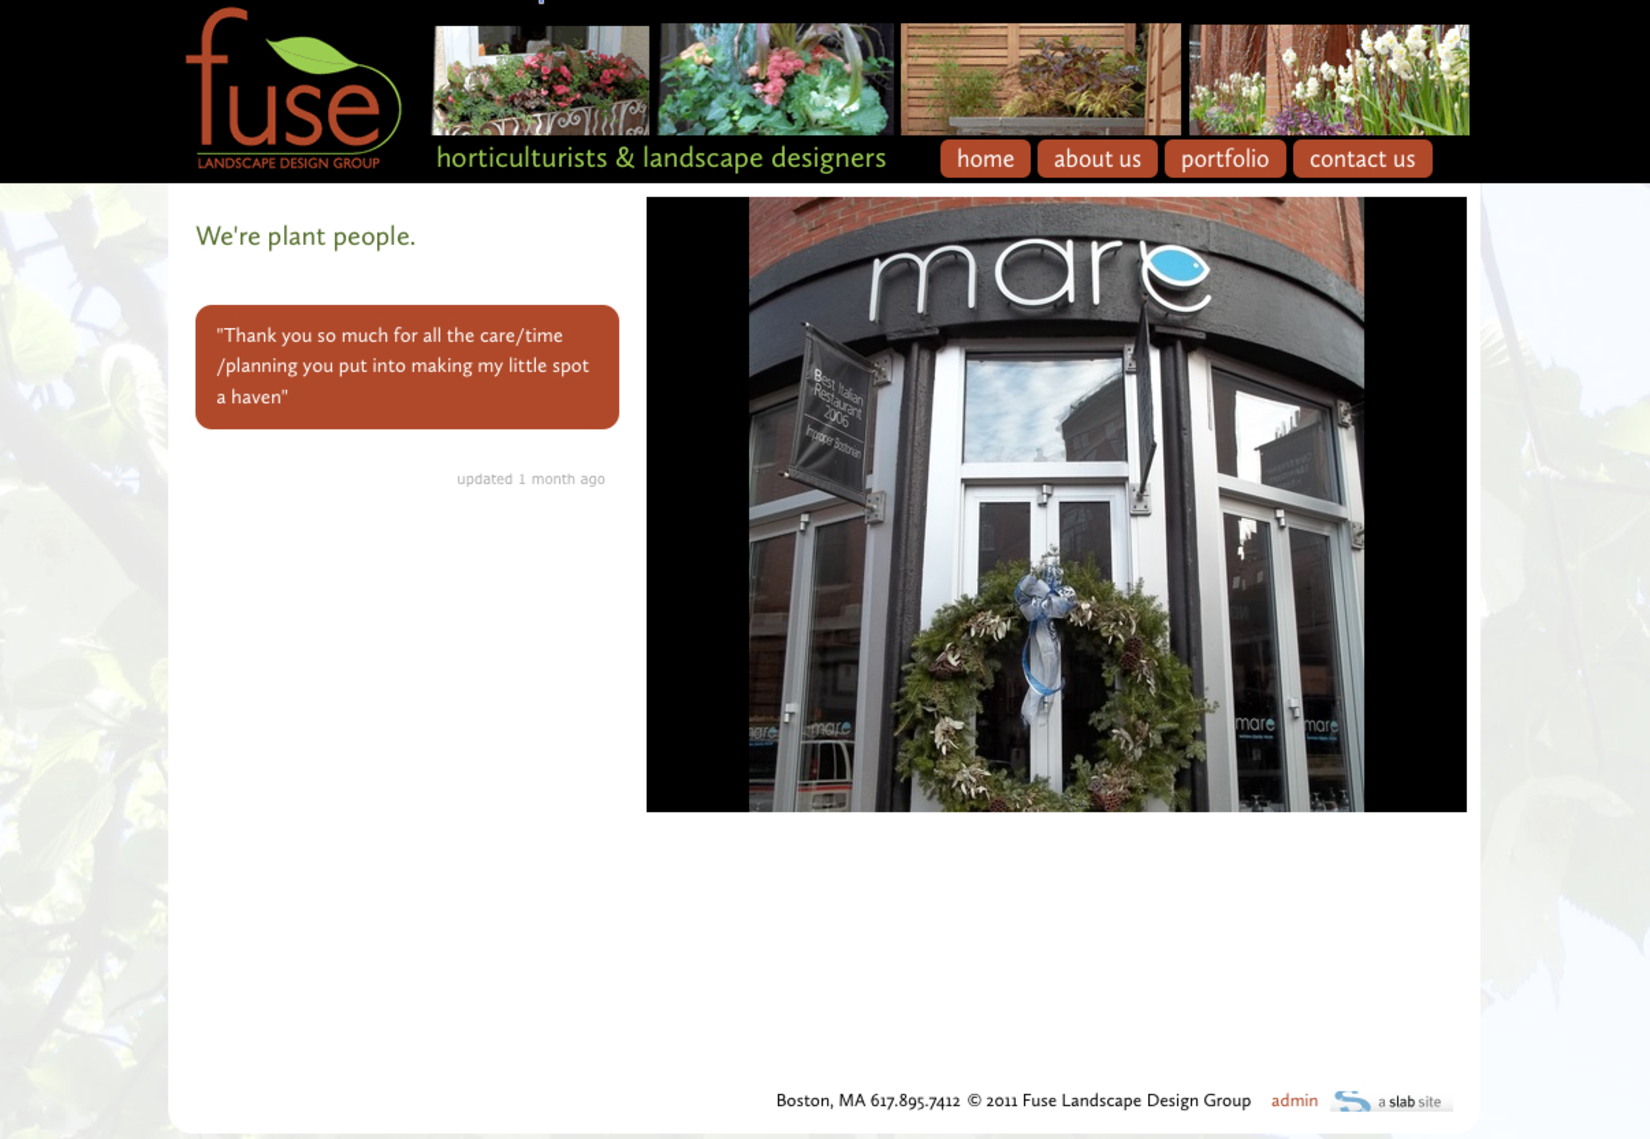 Fuse Landscape Design Group